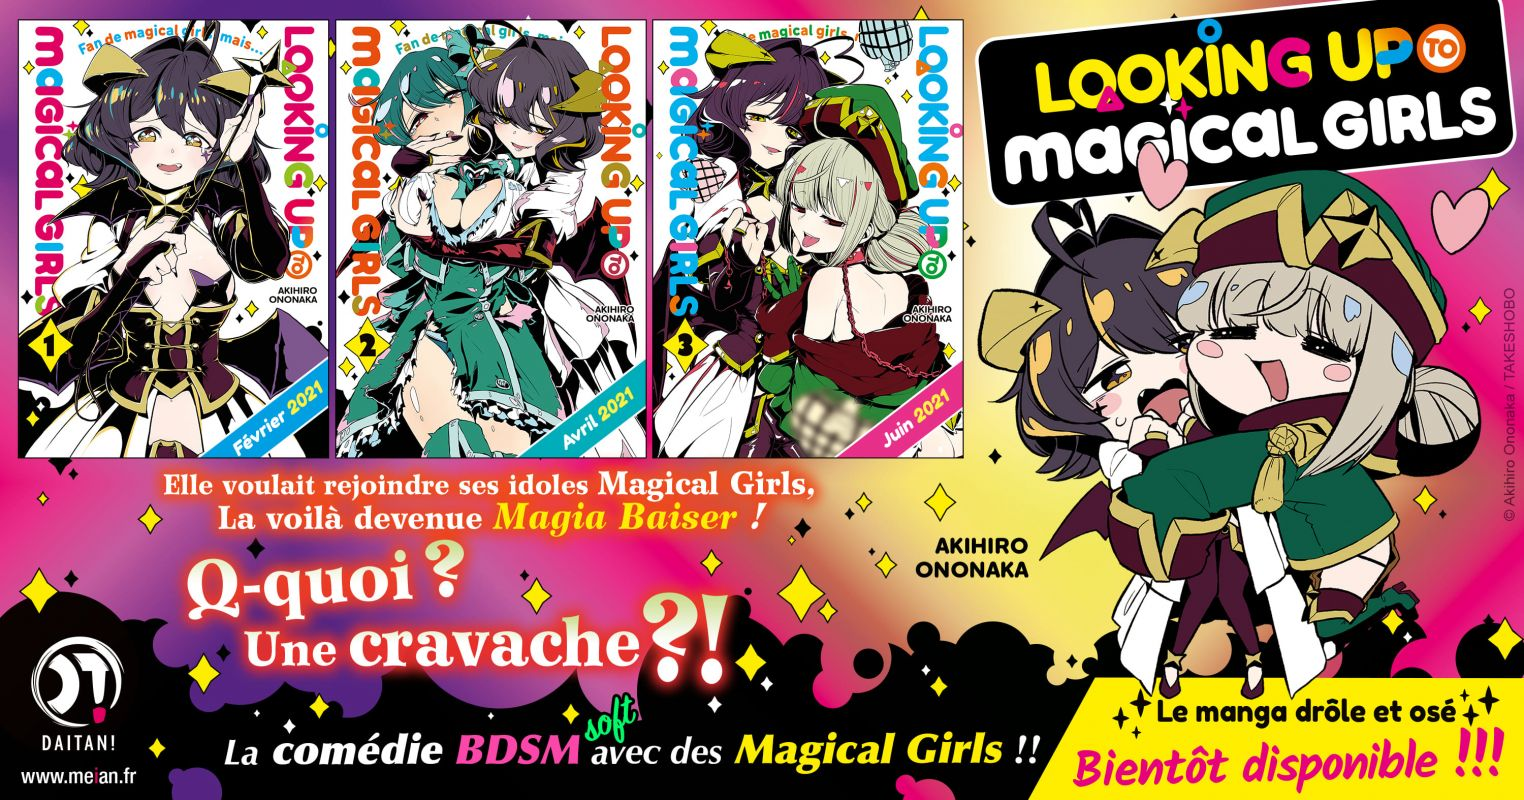 Looking Up To Magical Girls chez Meian